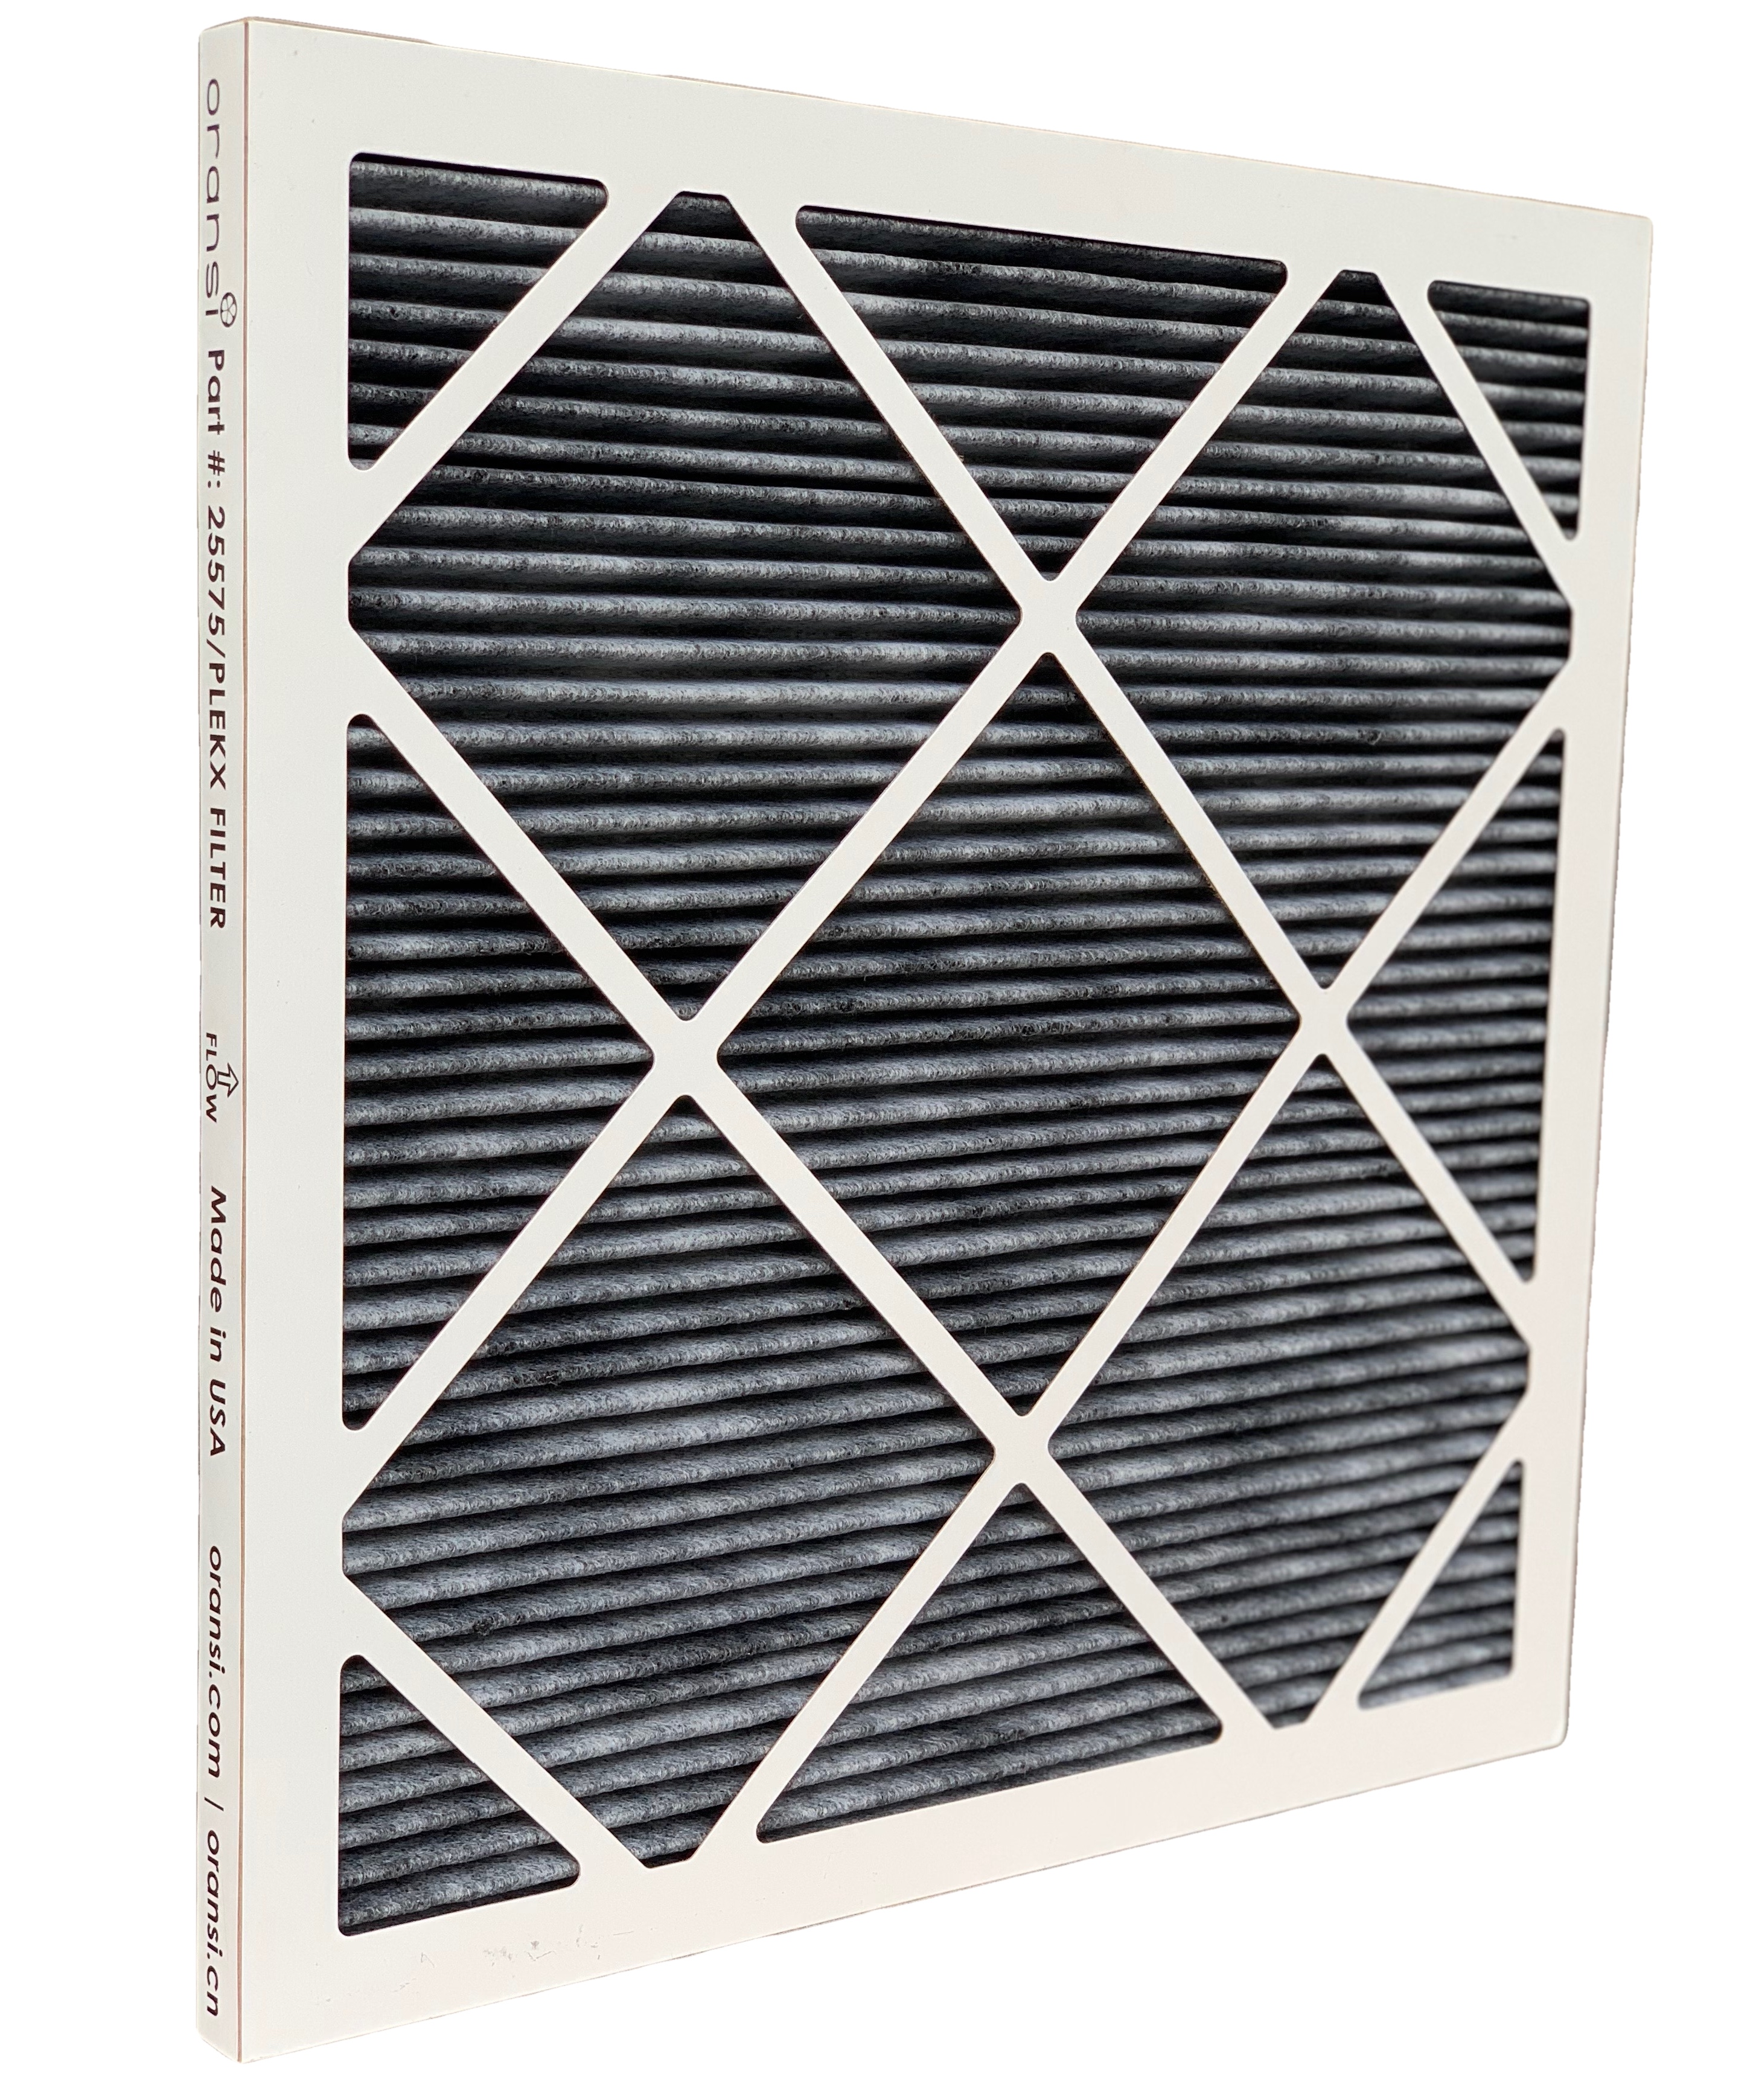 Oransi pleated carbon filter